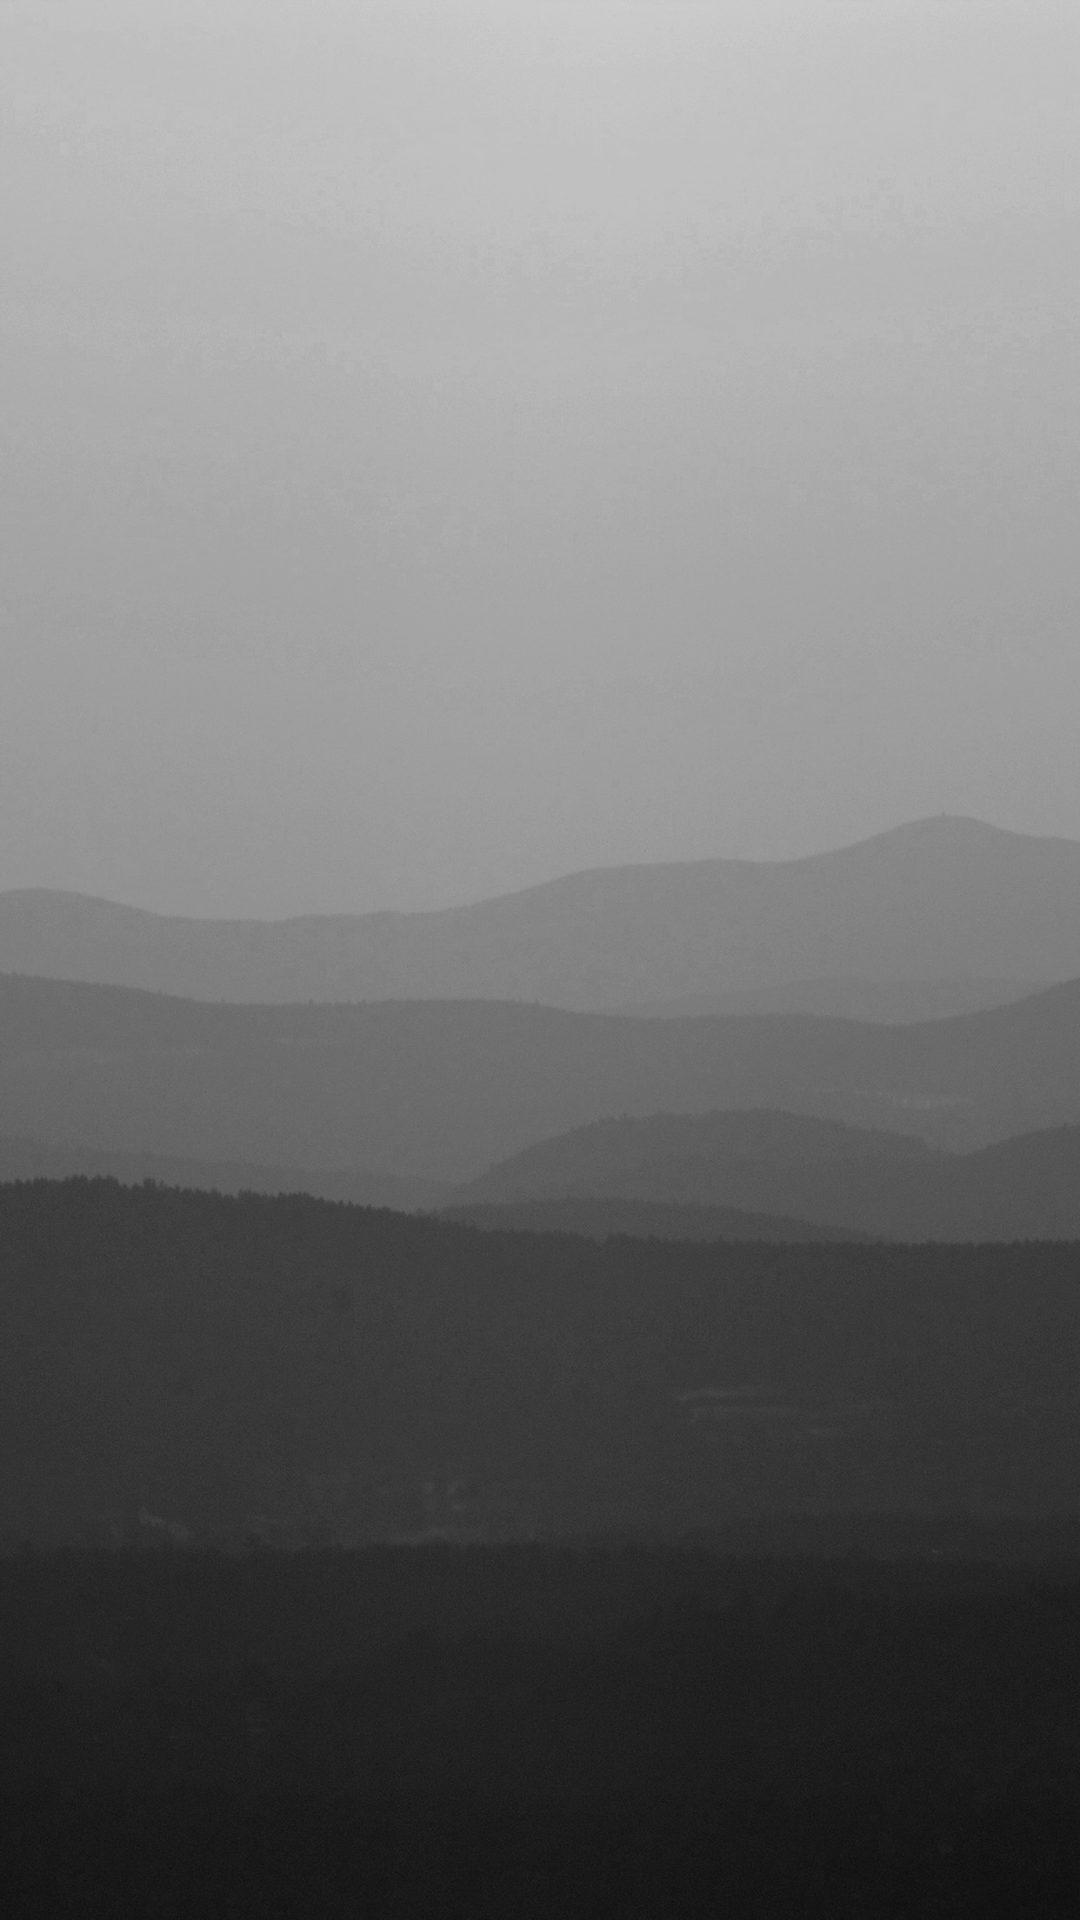 Mountain Silhouette Dark Bw Morning Nature